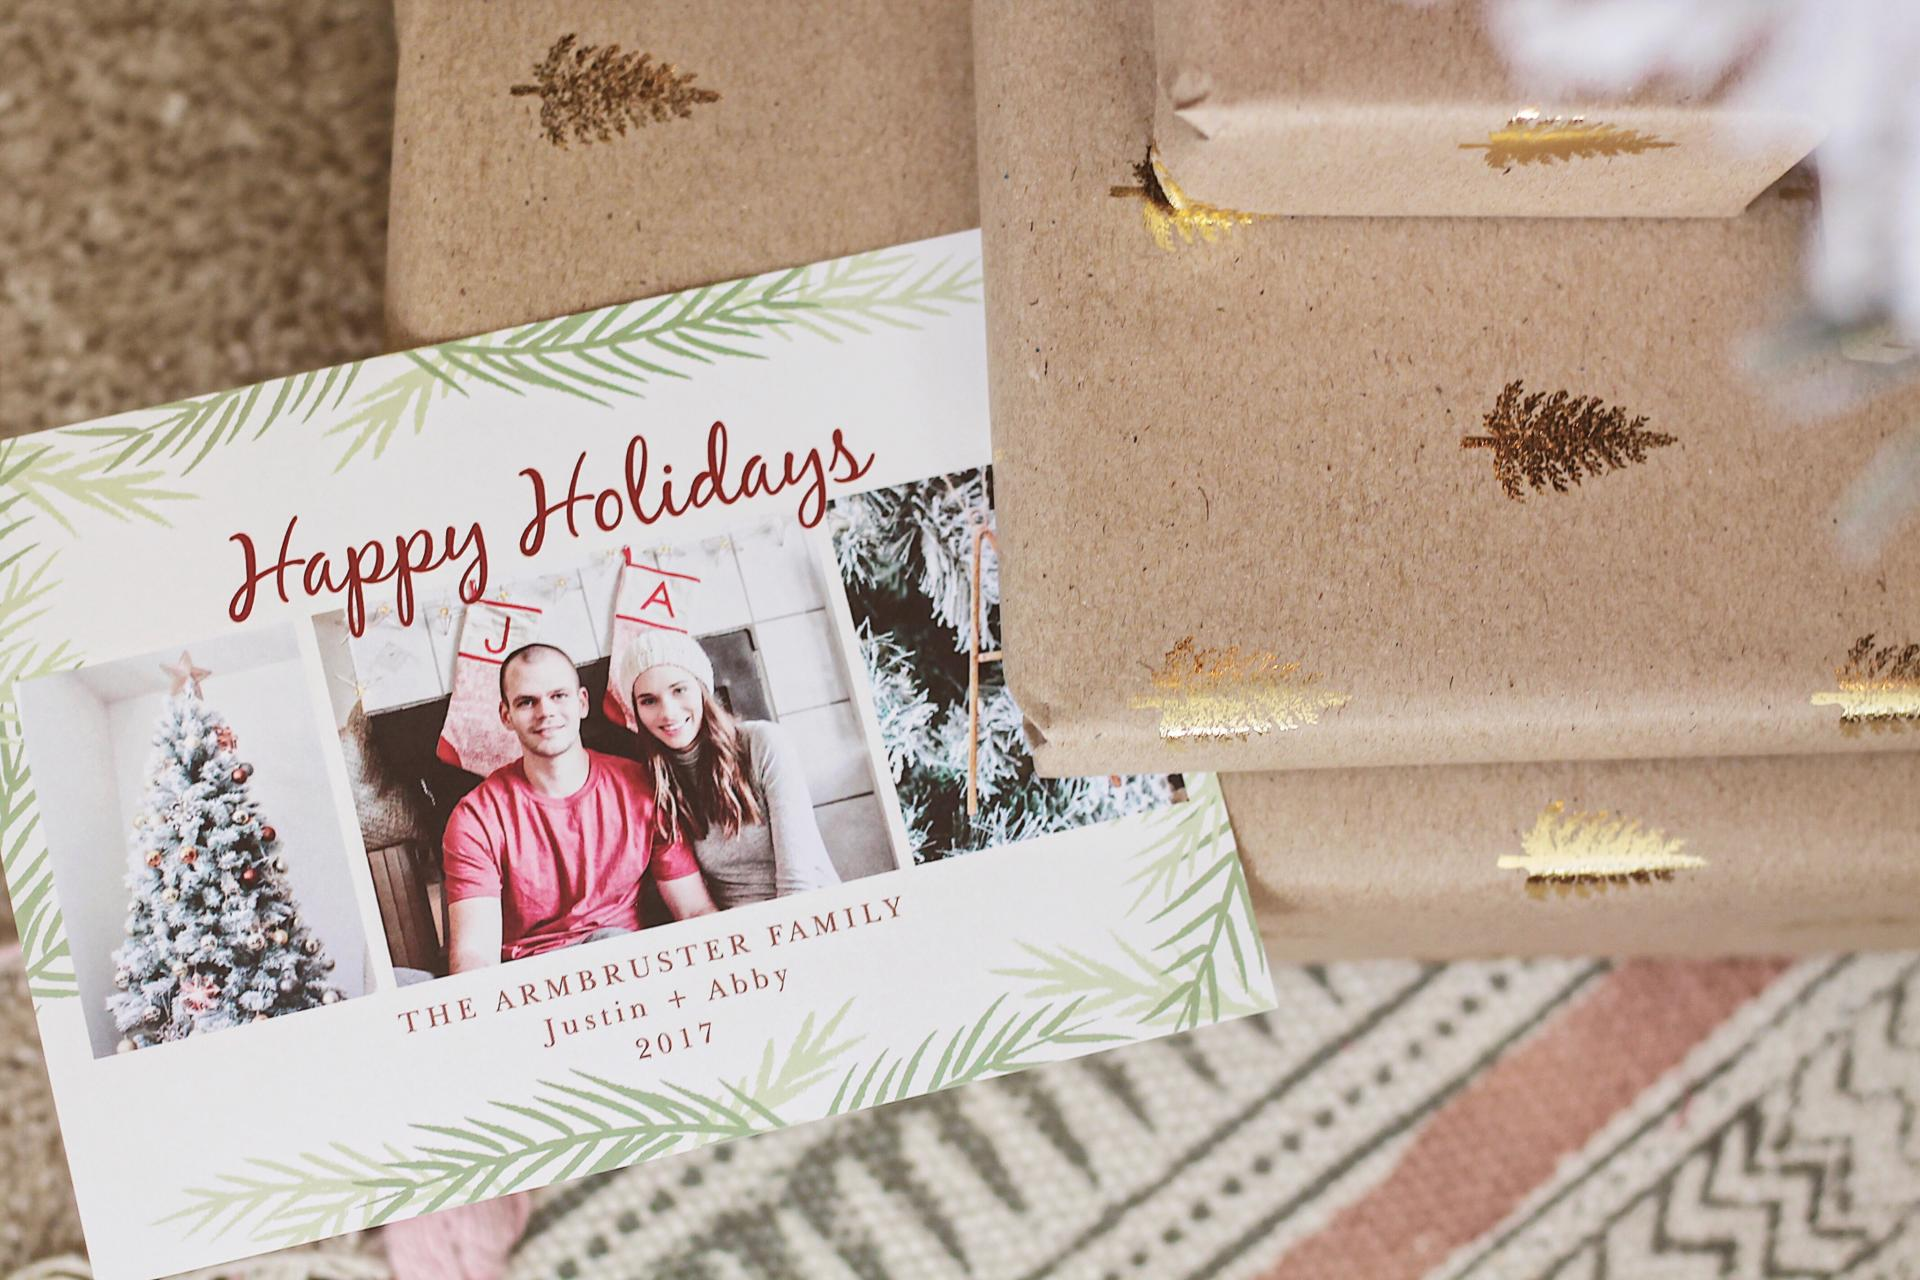 At Home with the Armbrusters: Our First Christmas Card with Basic Invite